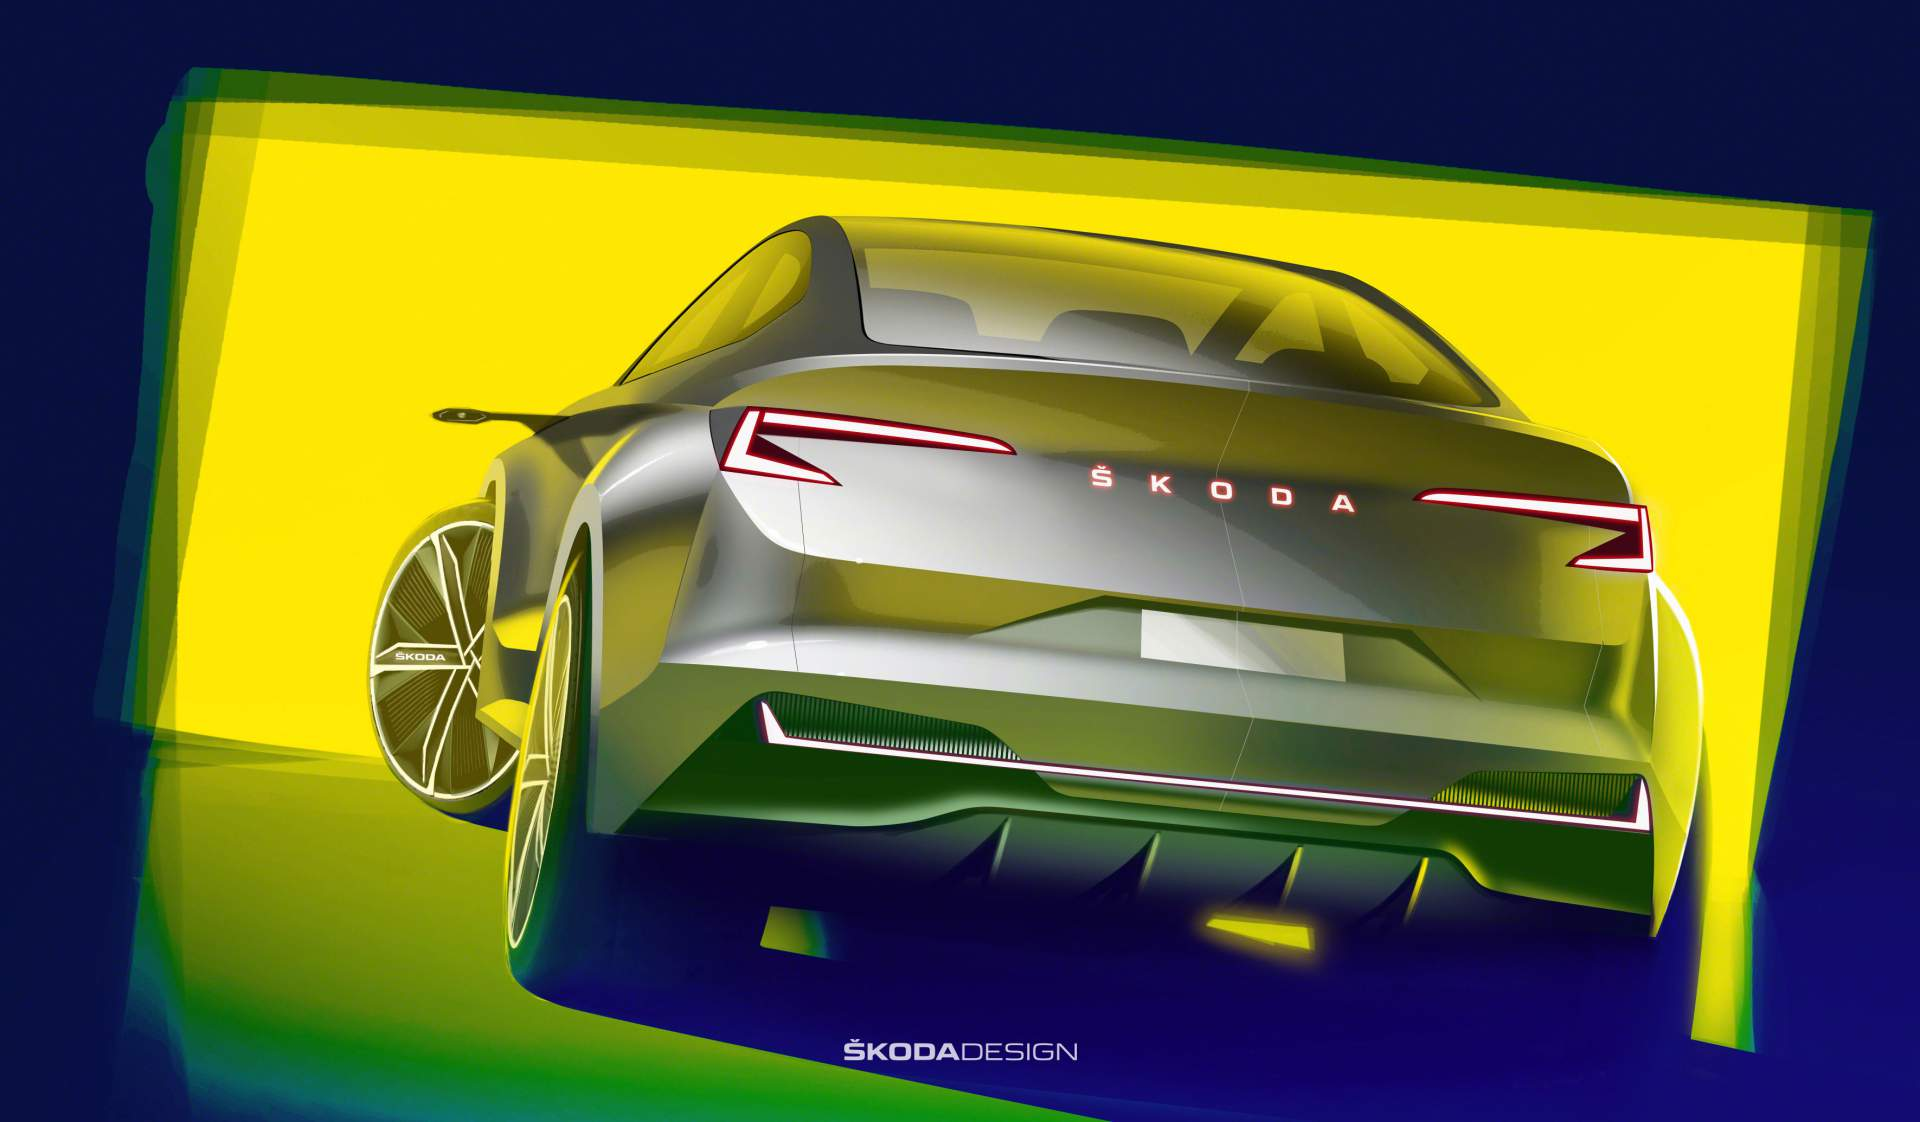 40be5fc8-skoda-vision-iv-concept-design-sketch-1